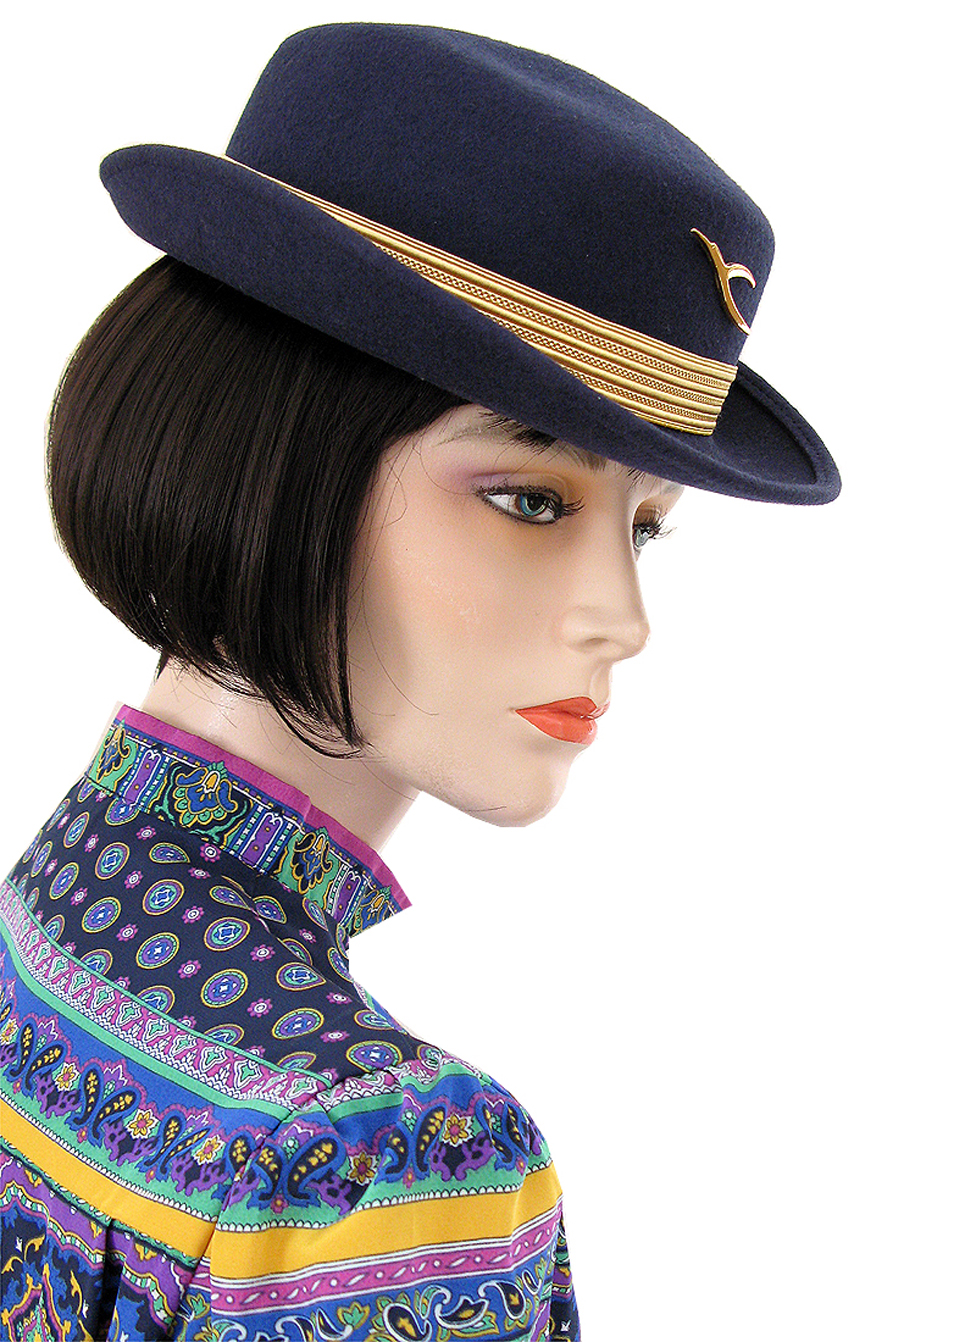 """One of my favourite uniforms: I love the colour combination of the blouse and the hat."" (Kuwait Airways, late 1990s)"